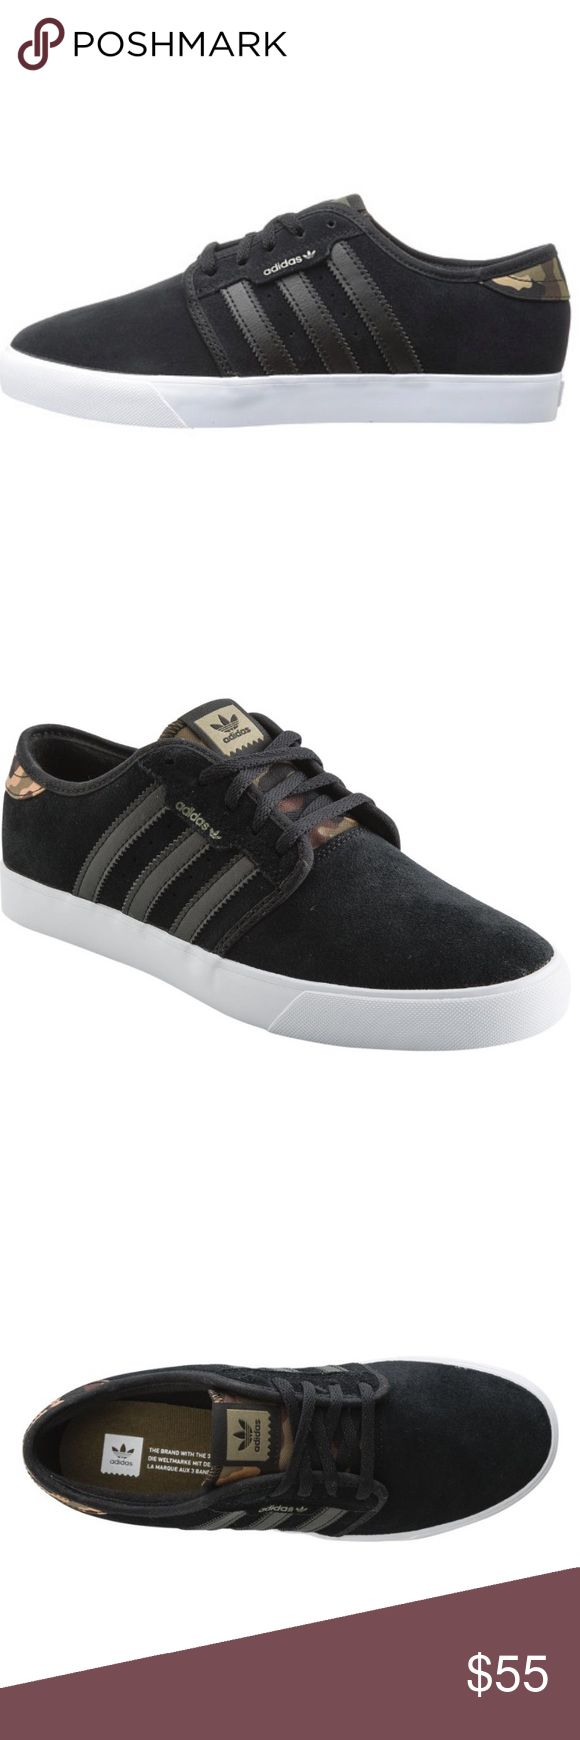 new style 3c69a 912c4 The 25+ best Adidas Shoes Men trending ideas on Pinterest   Sneakers women,  Athletic shoes and Adidas nmd